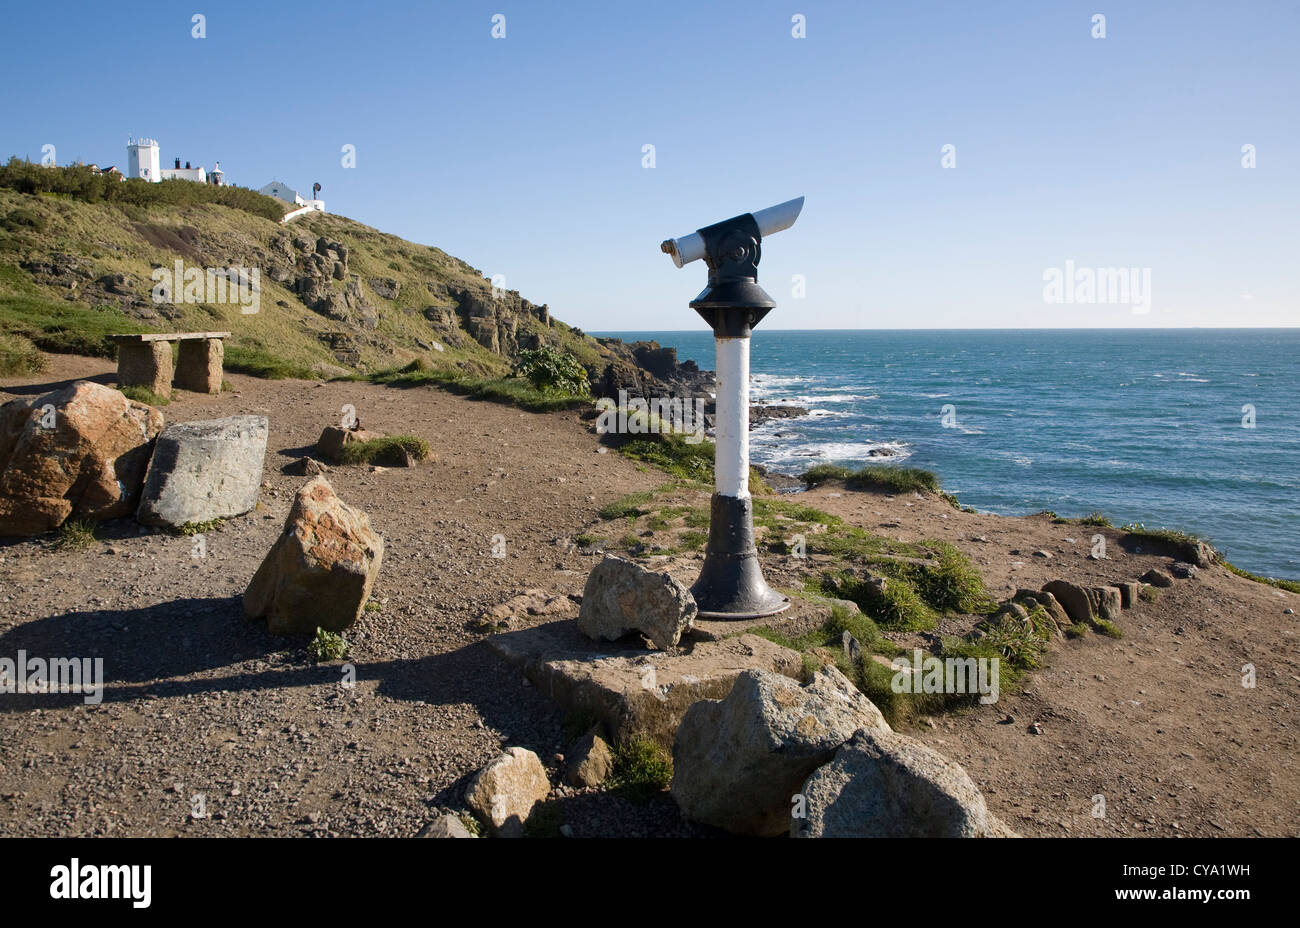 Coastal look-out telescope Lizard Point Cornwall England - Stock Image